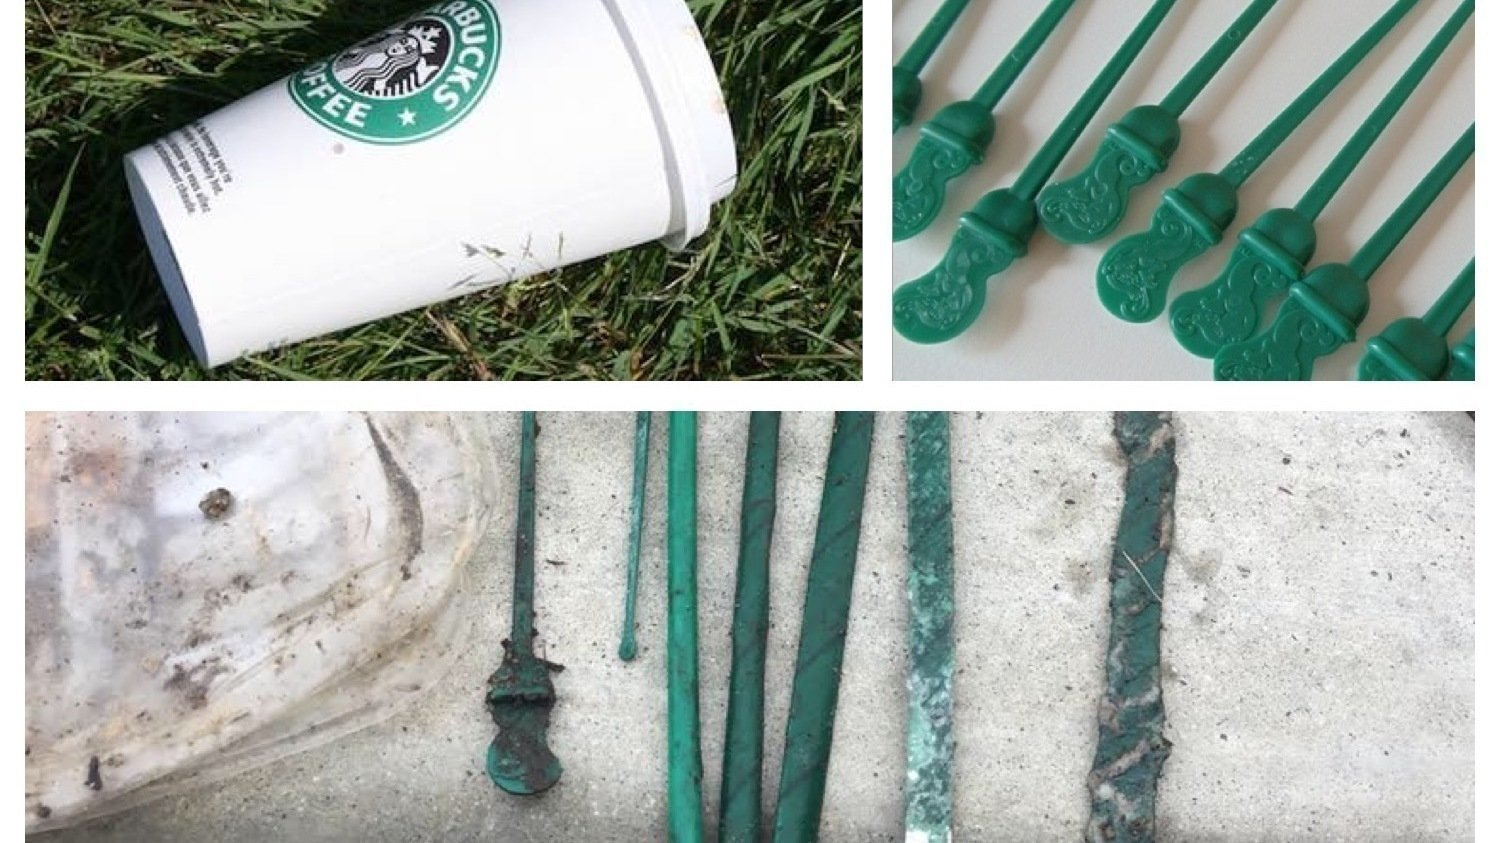 Petition 183 Starbucks Stop Using Plastic Stoppers End